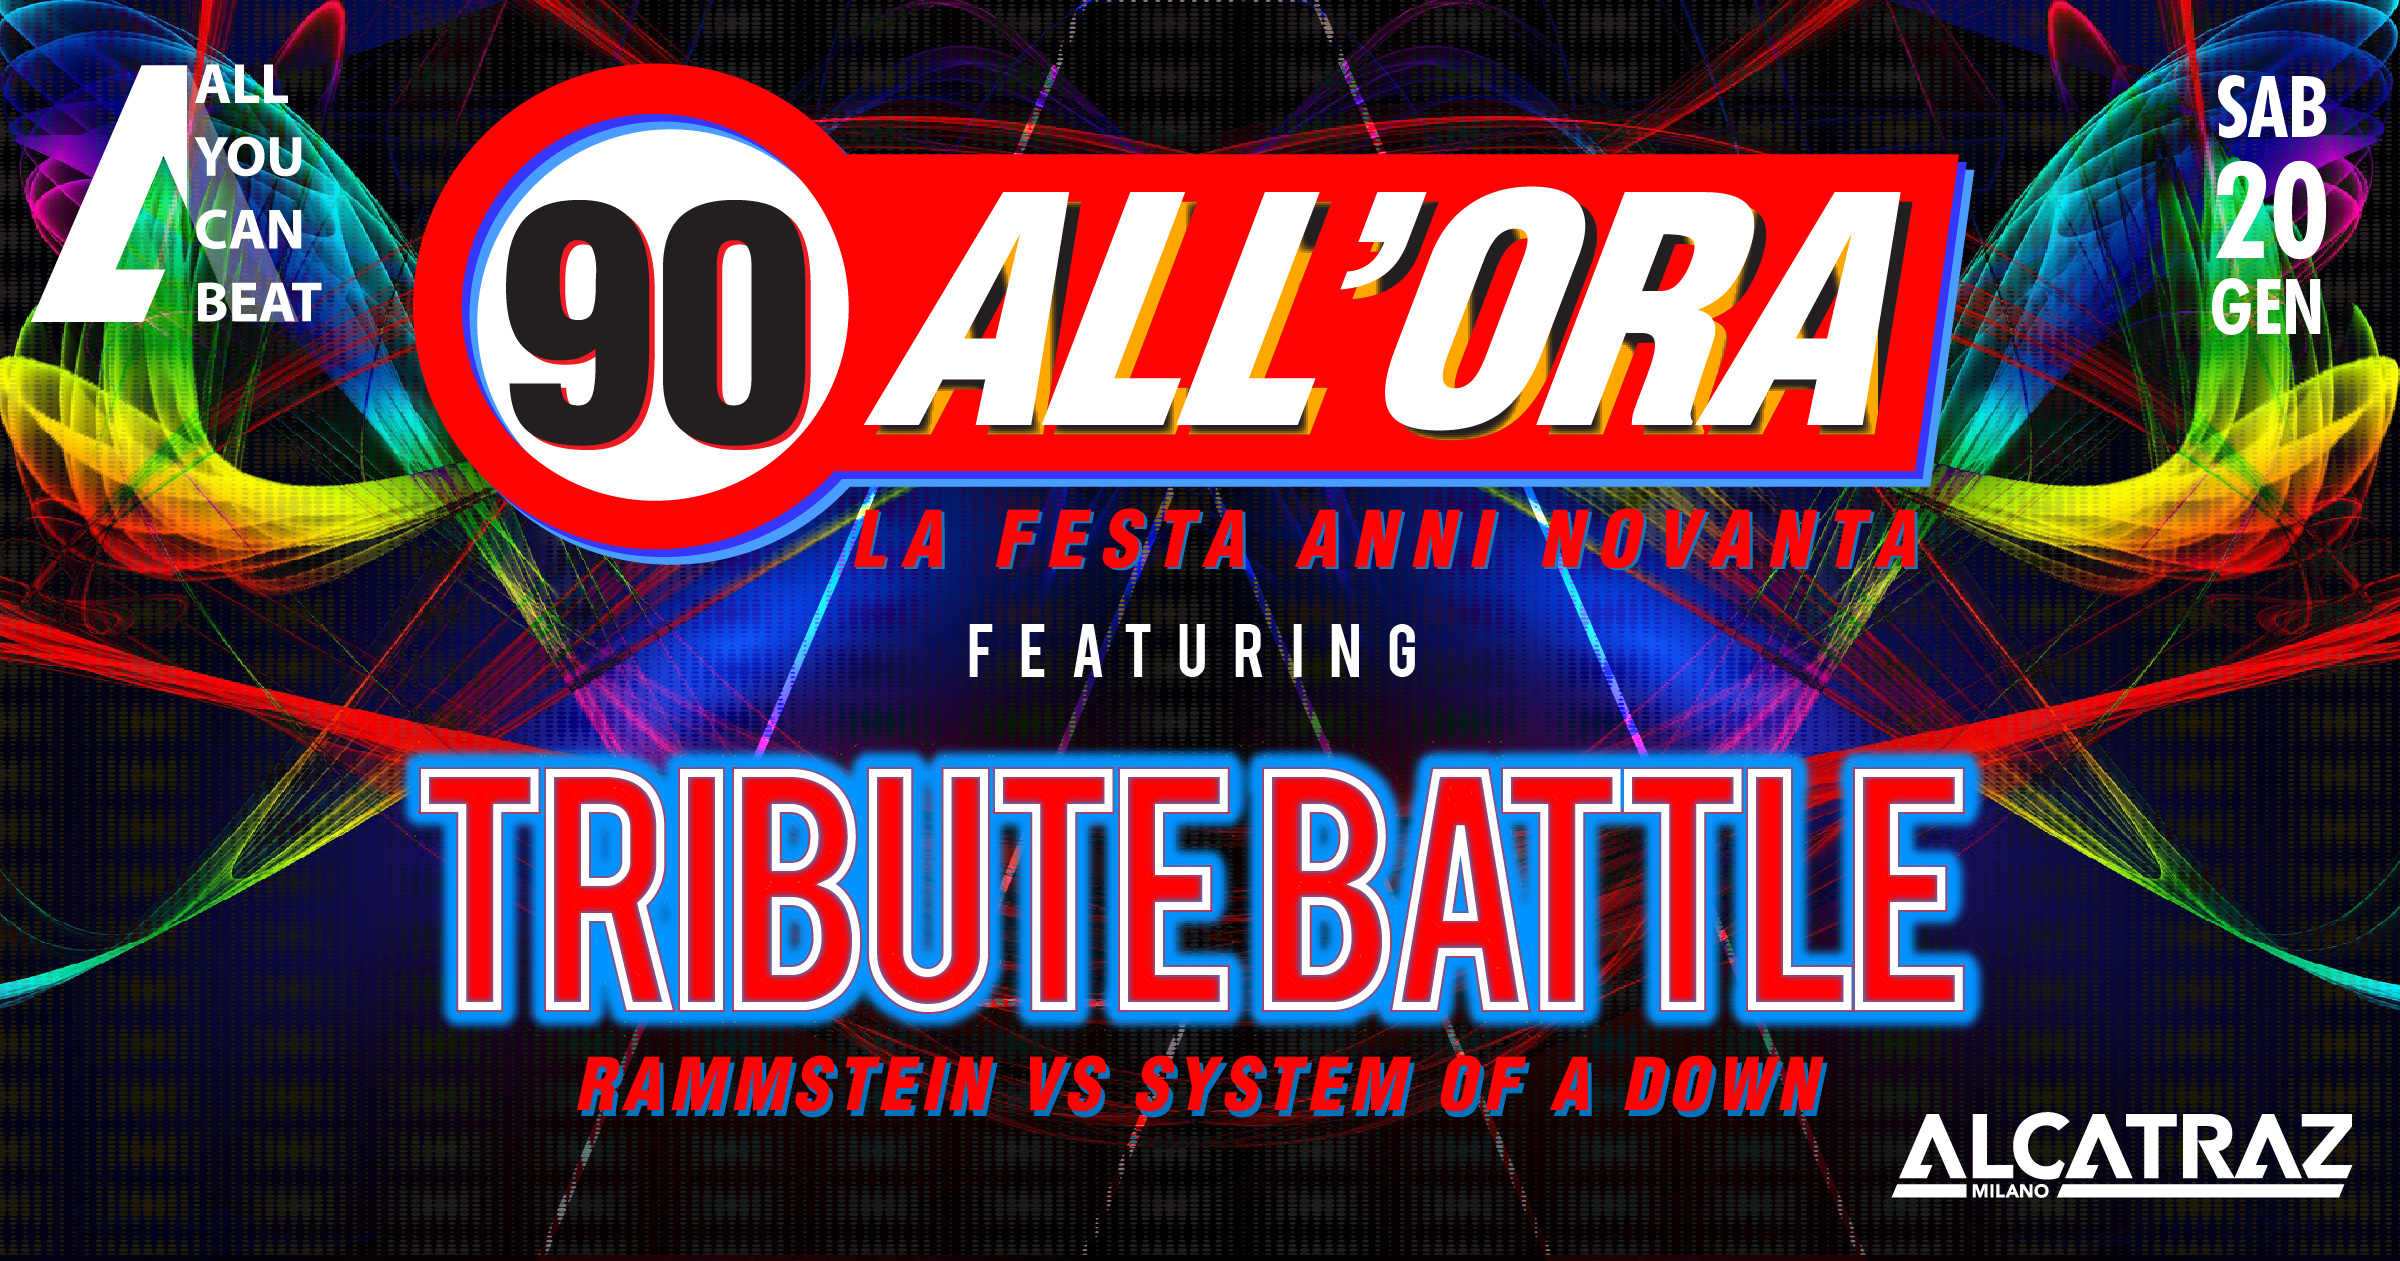 90 ALLORA TRIBUTE BATTLE